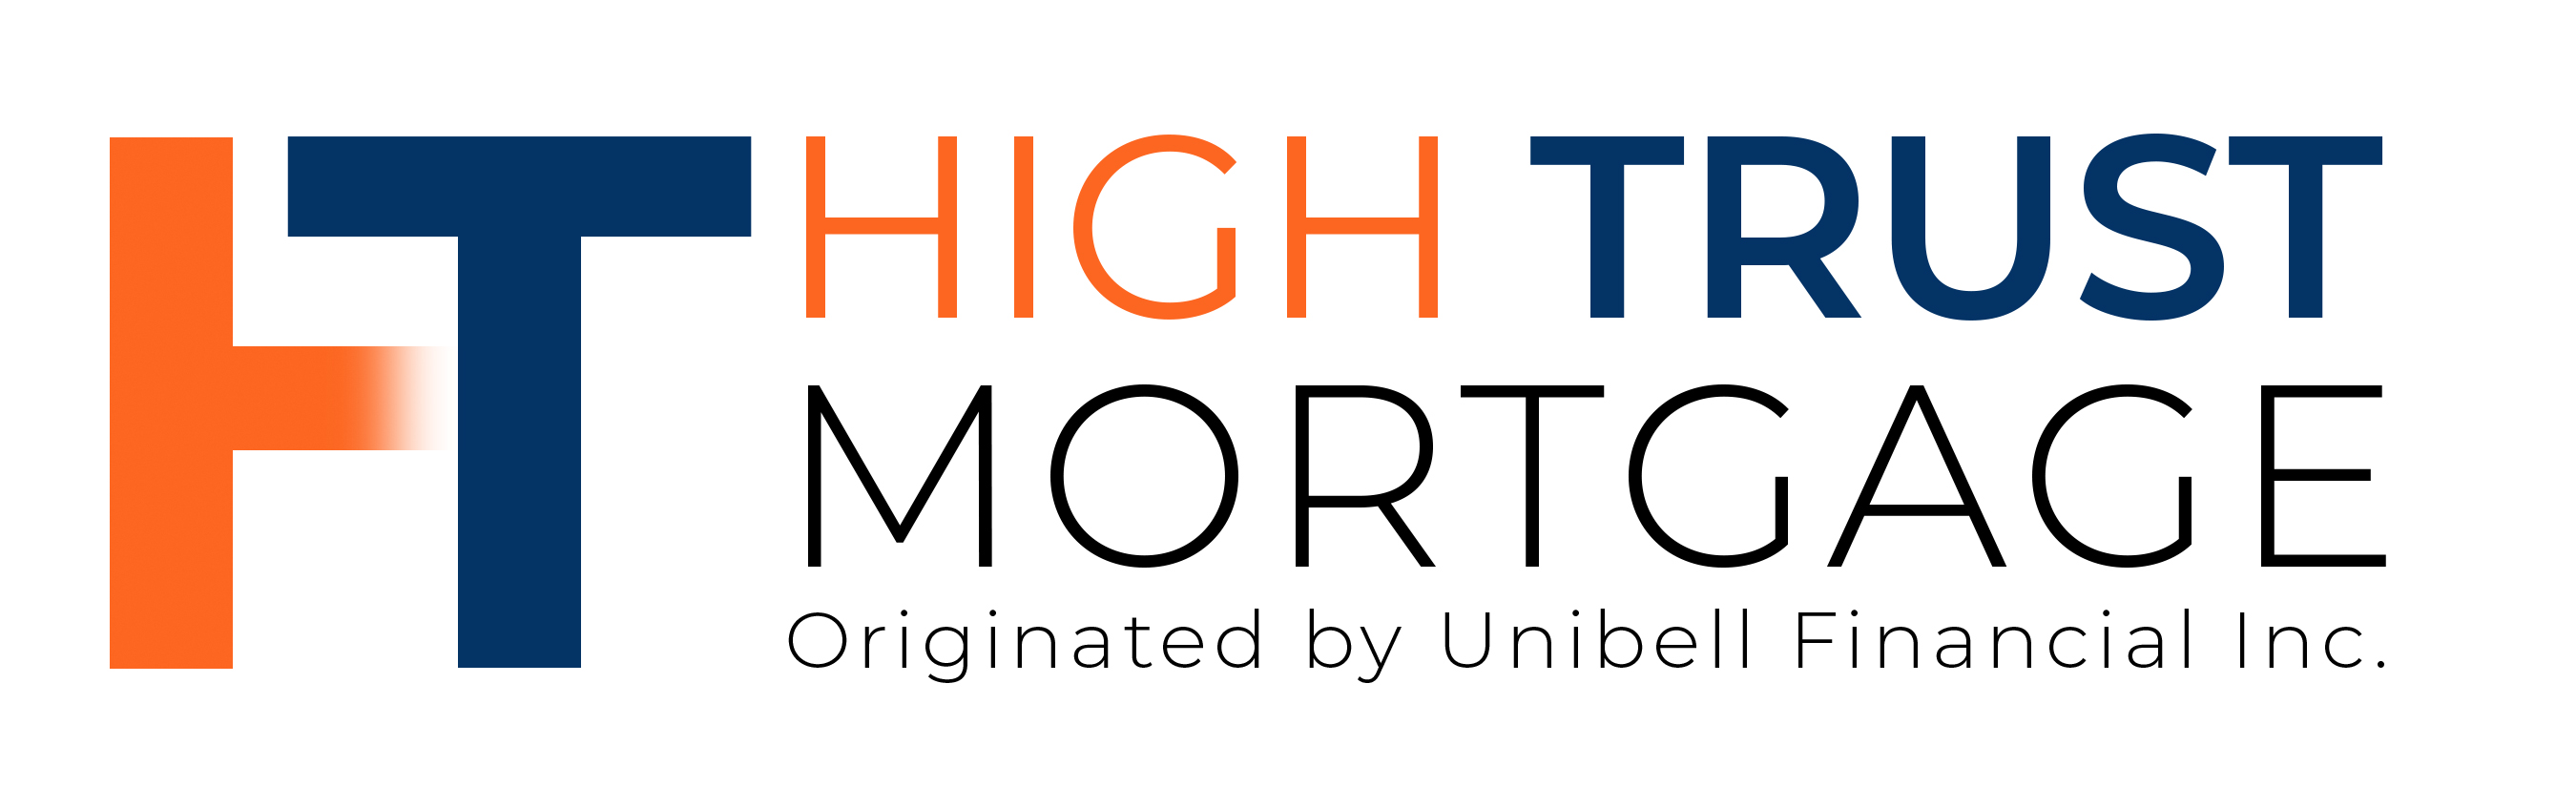 High Trust Mortgage